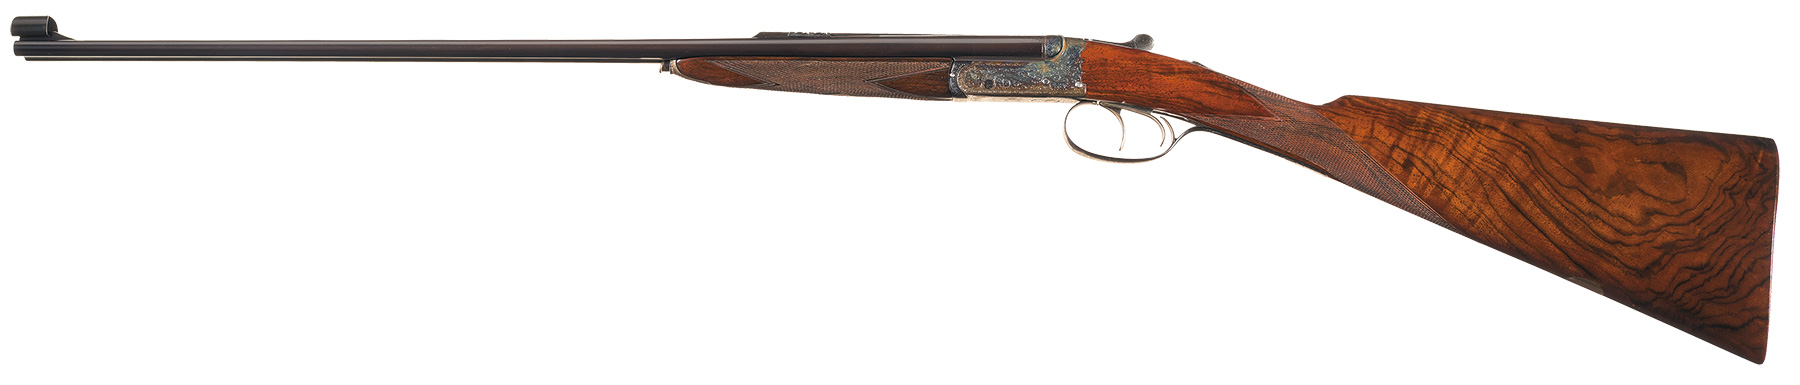 Churchill 22 Hornet double rifle